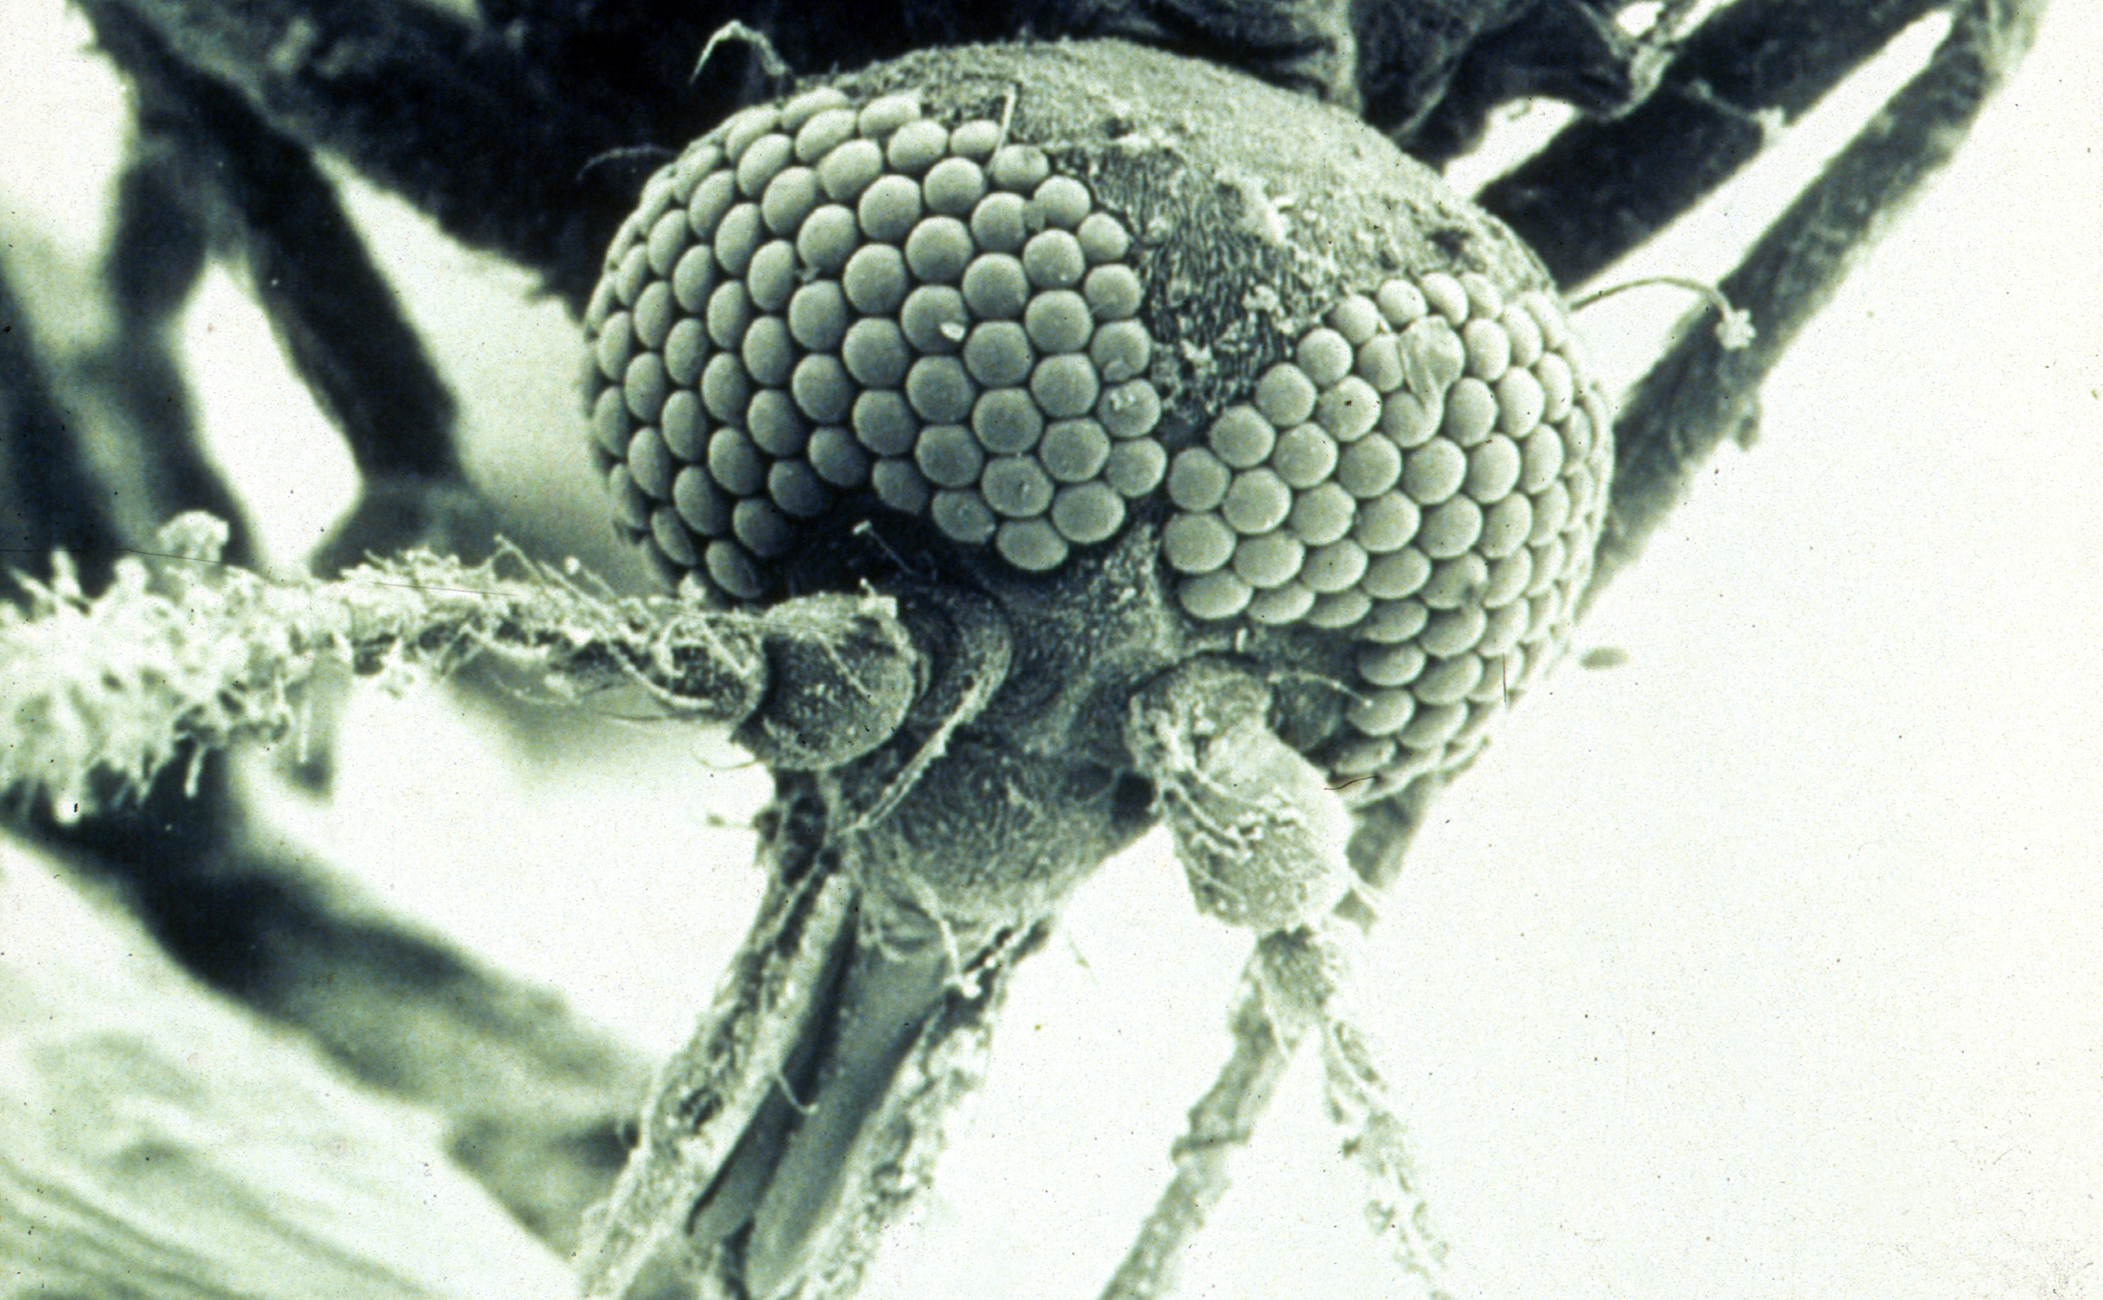 A black and white microscope image of a biting midge's head with faceted eyes and proboscis.